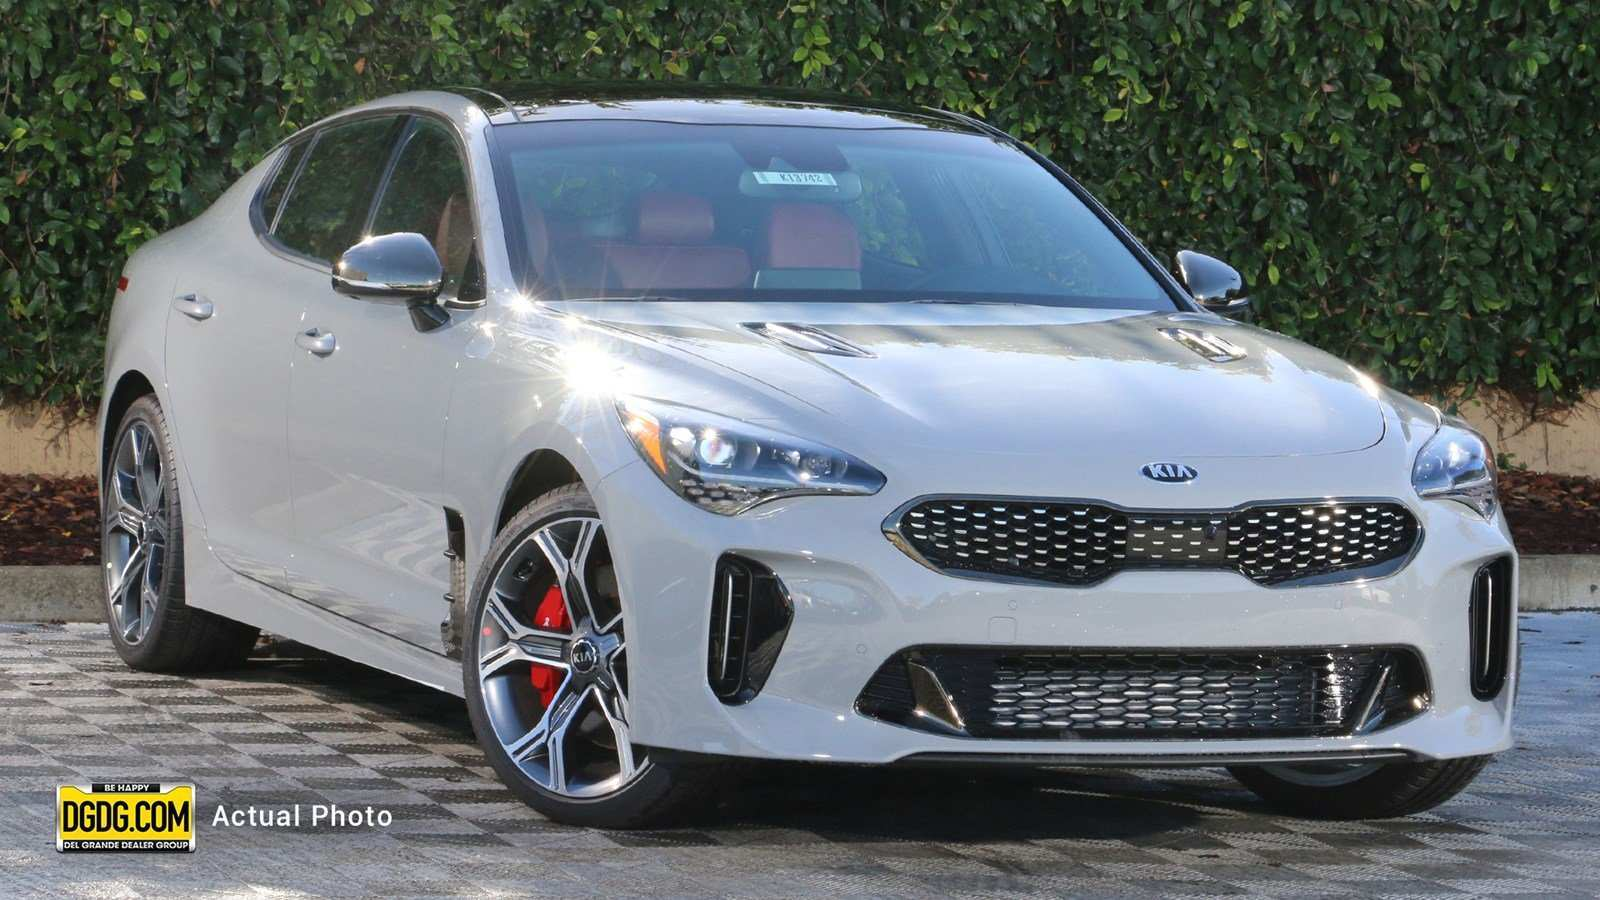 98 The 2020 Kia Stinger Gt2 Redesign And Review